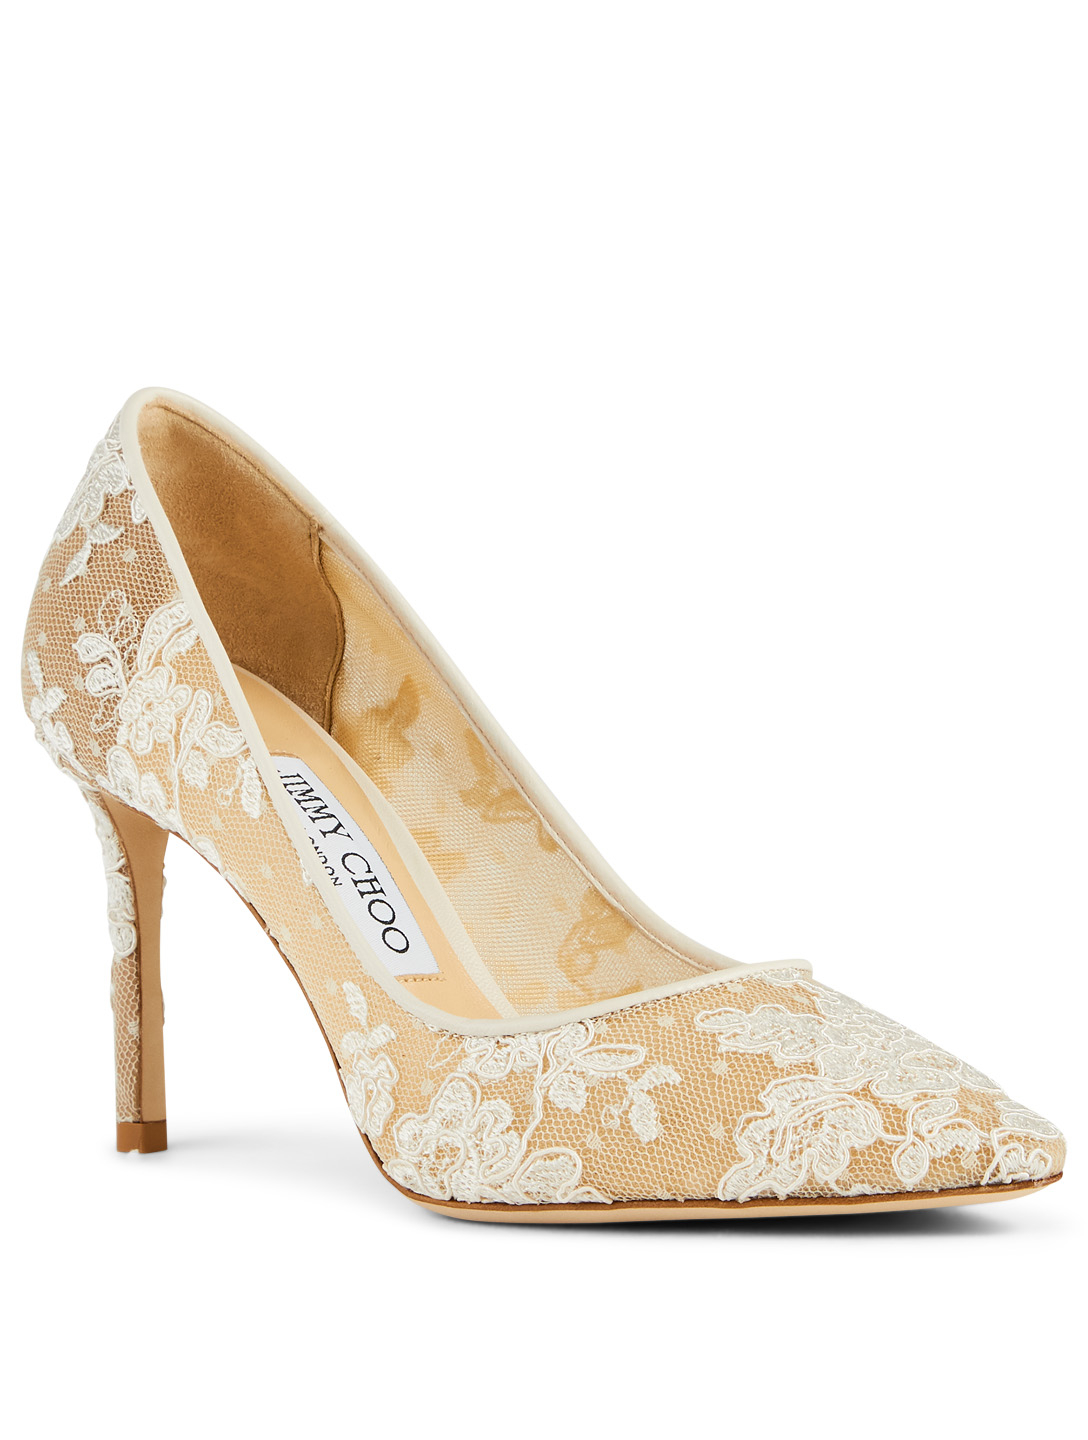 JIMMY CHOO Romy 85 Lace Pumps Women's White